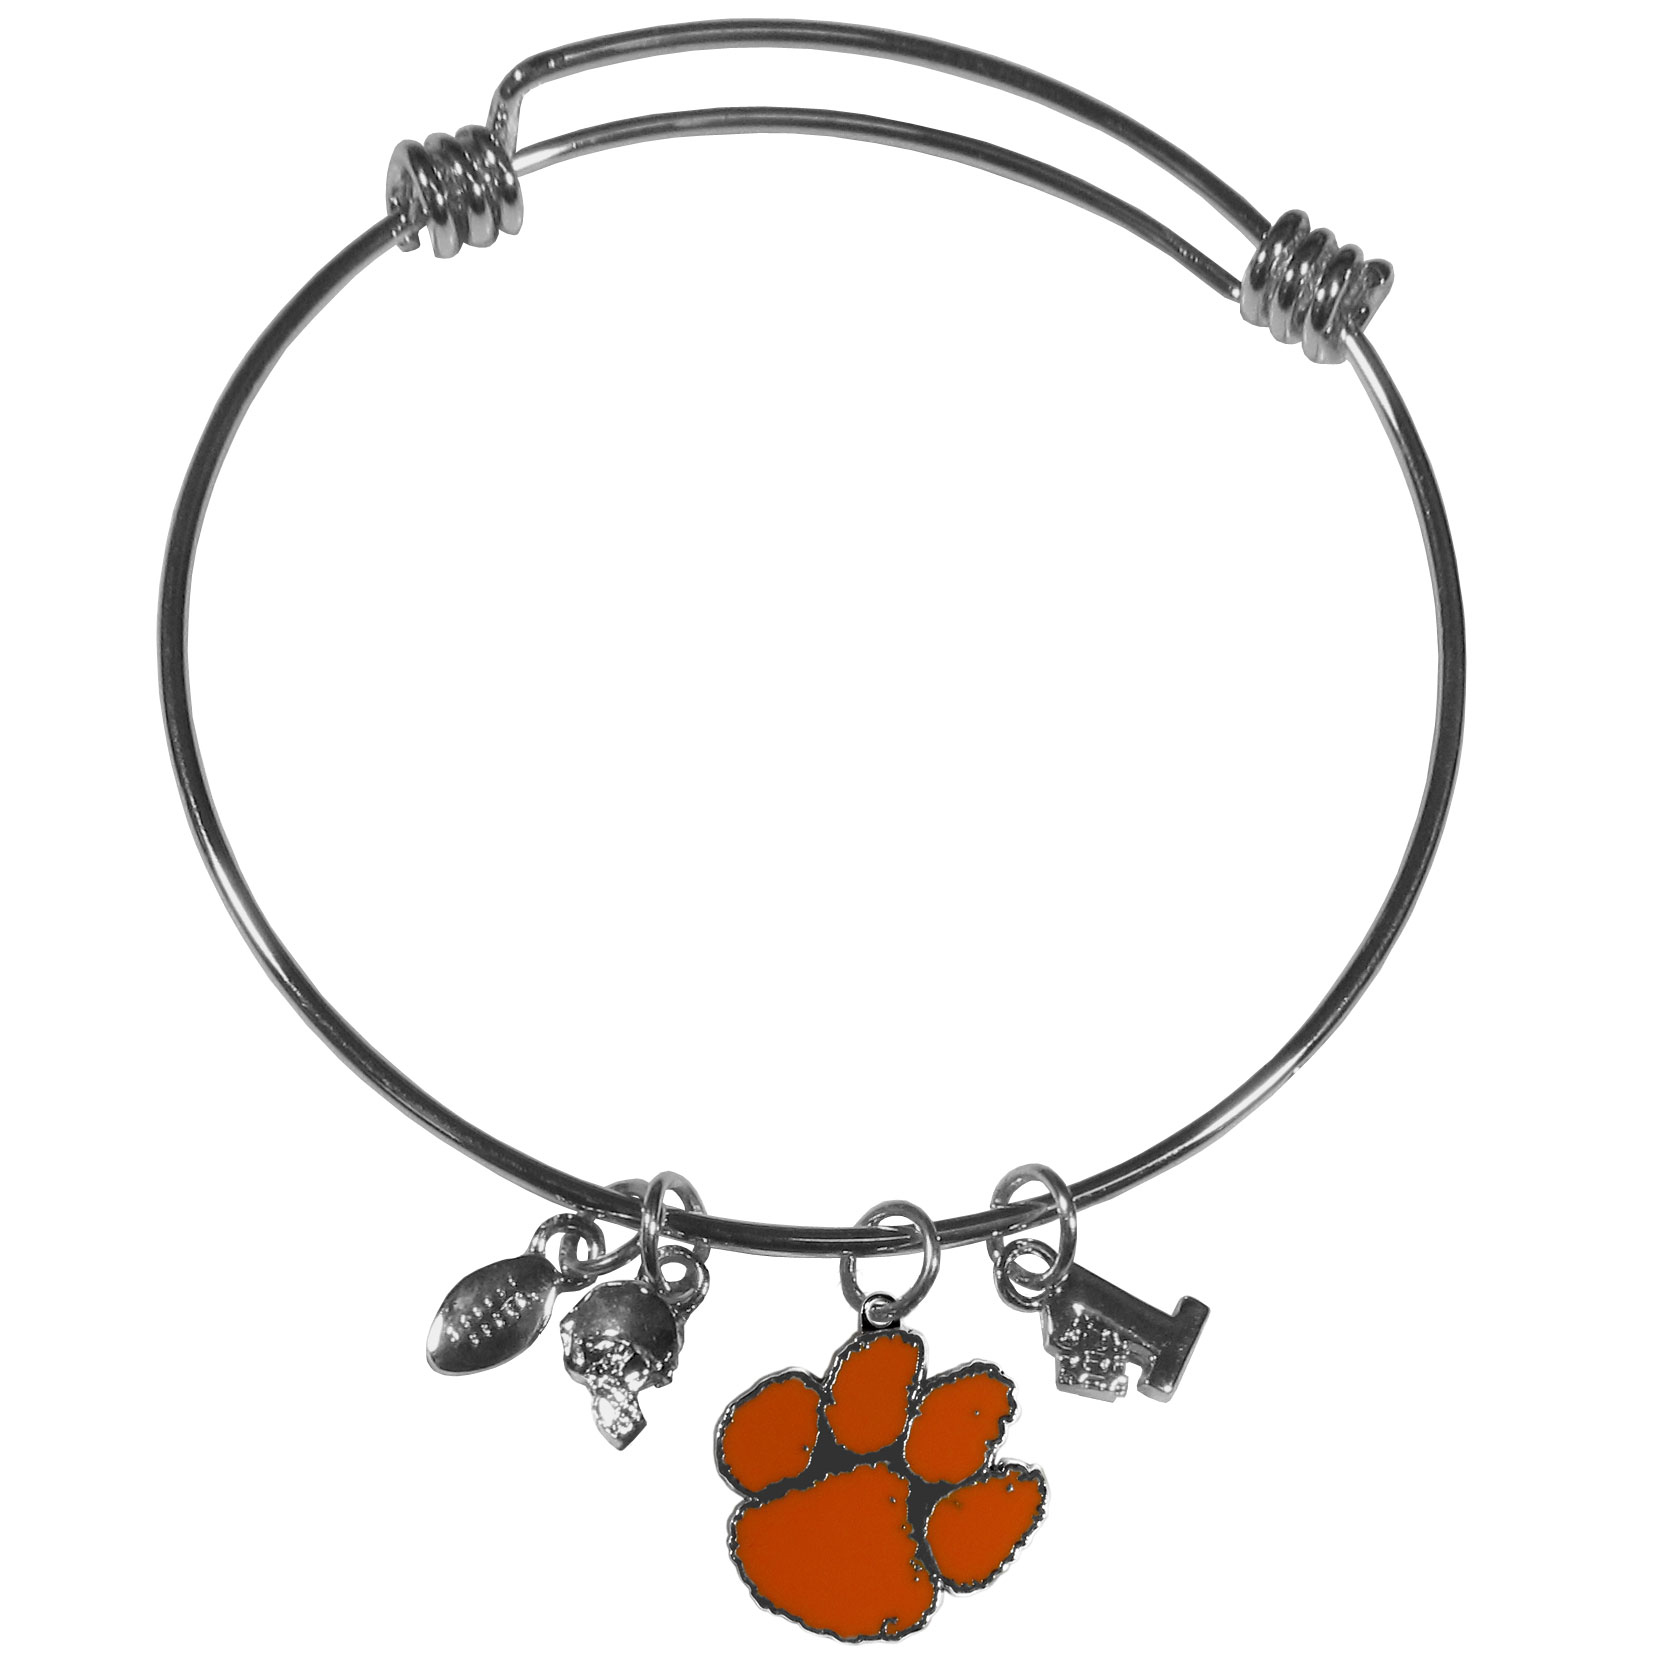 Clemson Tigers Charm Bangle Bracelet - Adjustable wire bracelets are all the rage and this Clemson Tigers bracelet matches the popular trend with your beloved team. The bracelet features 4 charms in total, each feature exceptional detail and the team charm has enameled team colors.